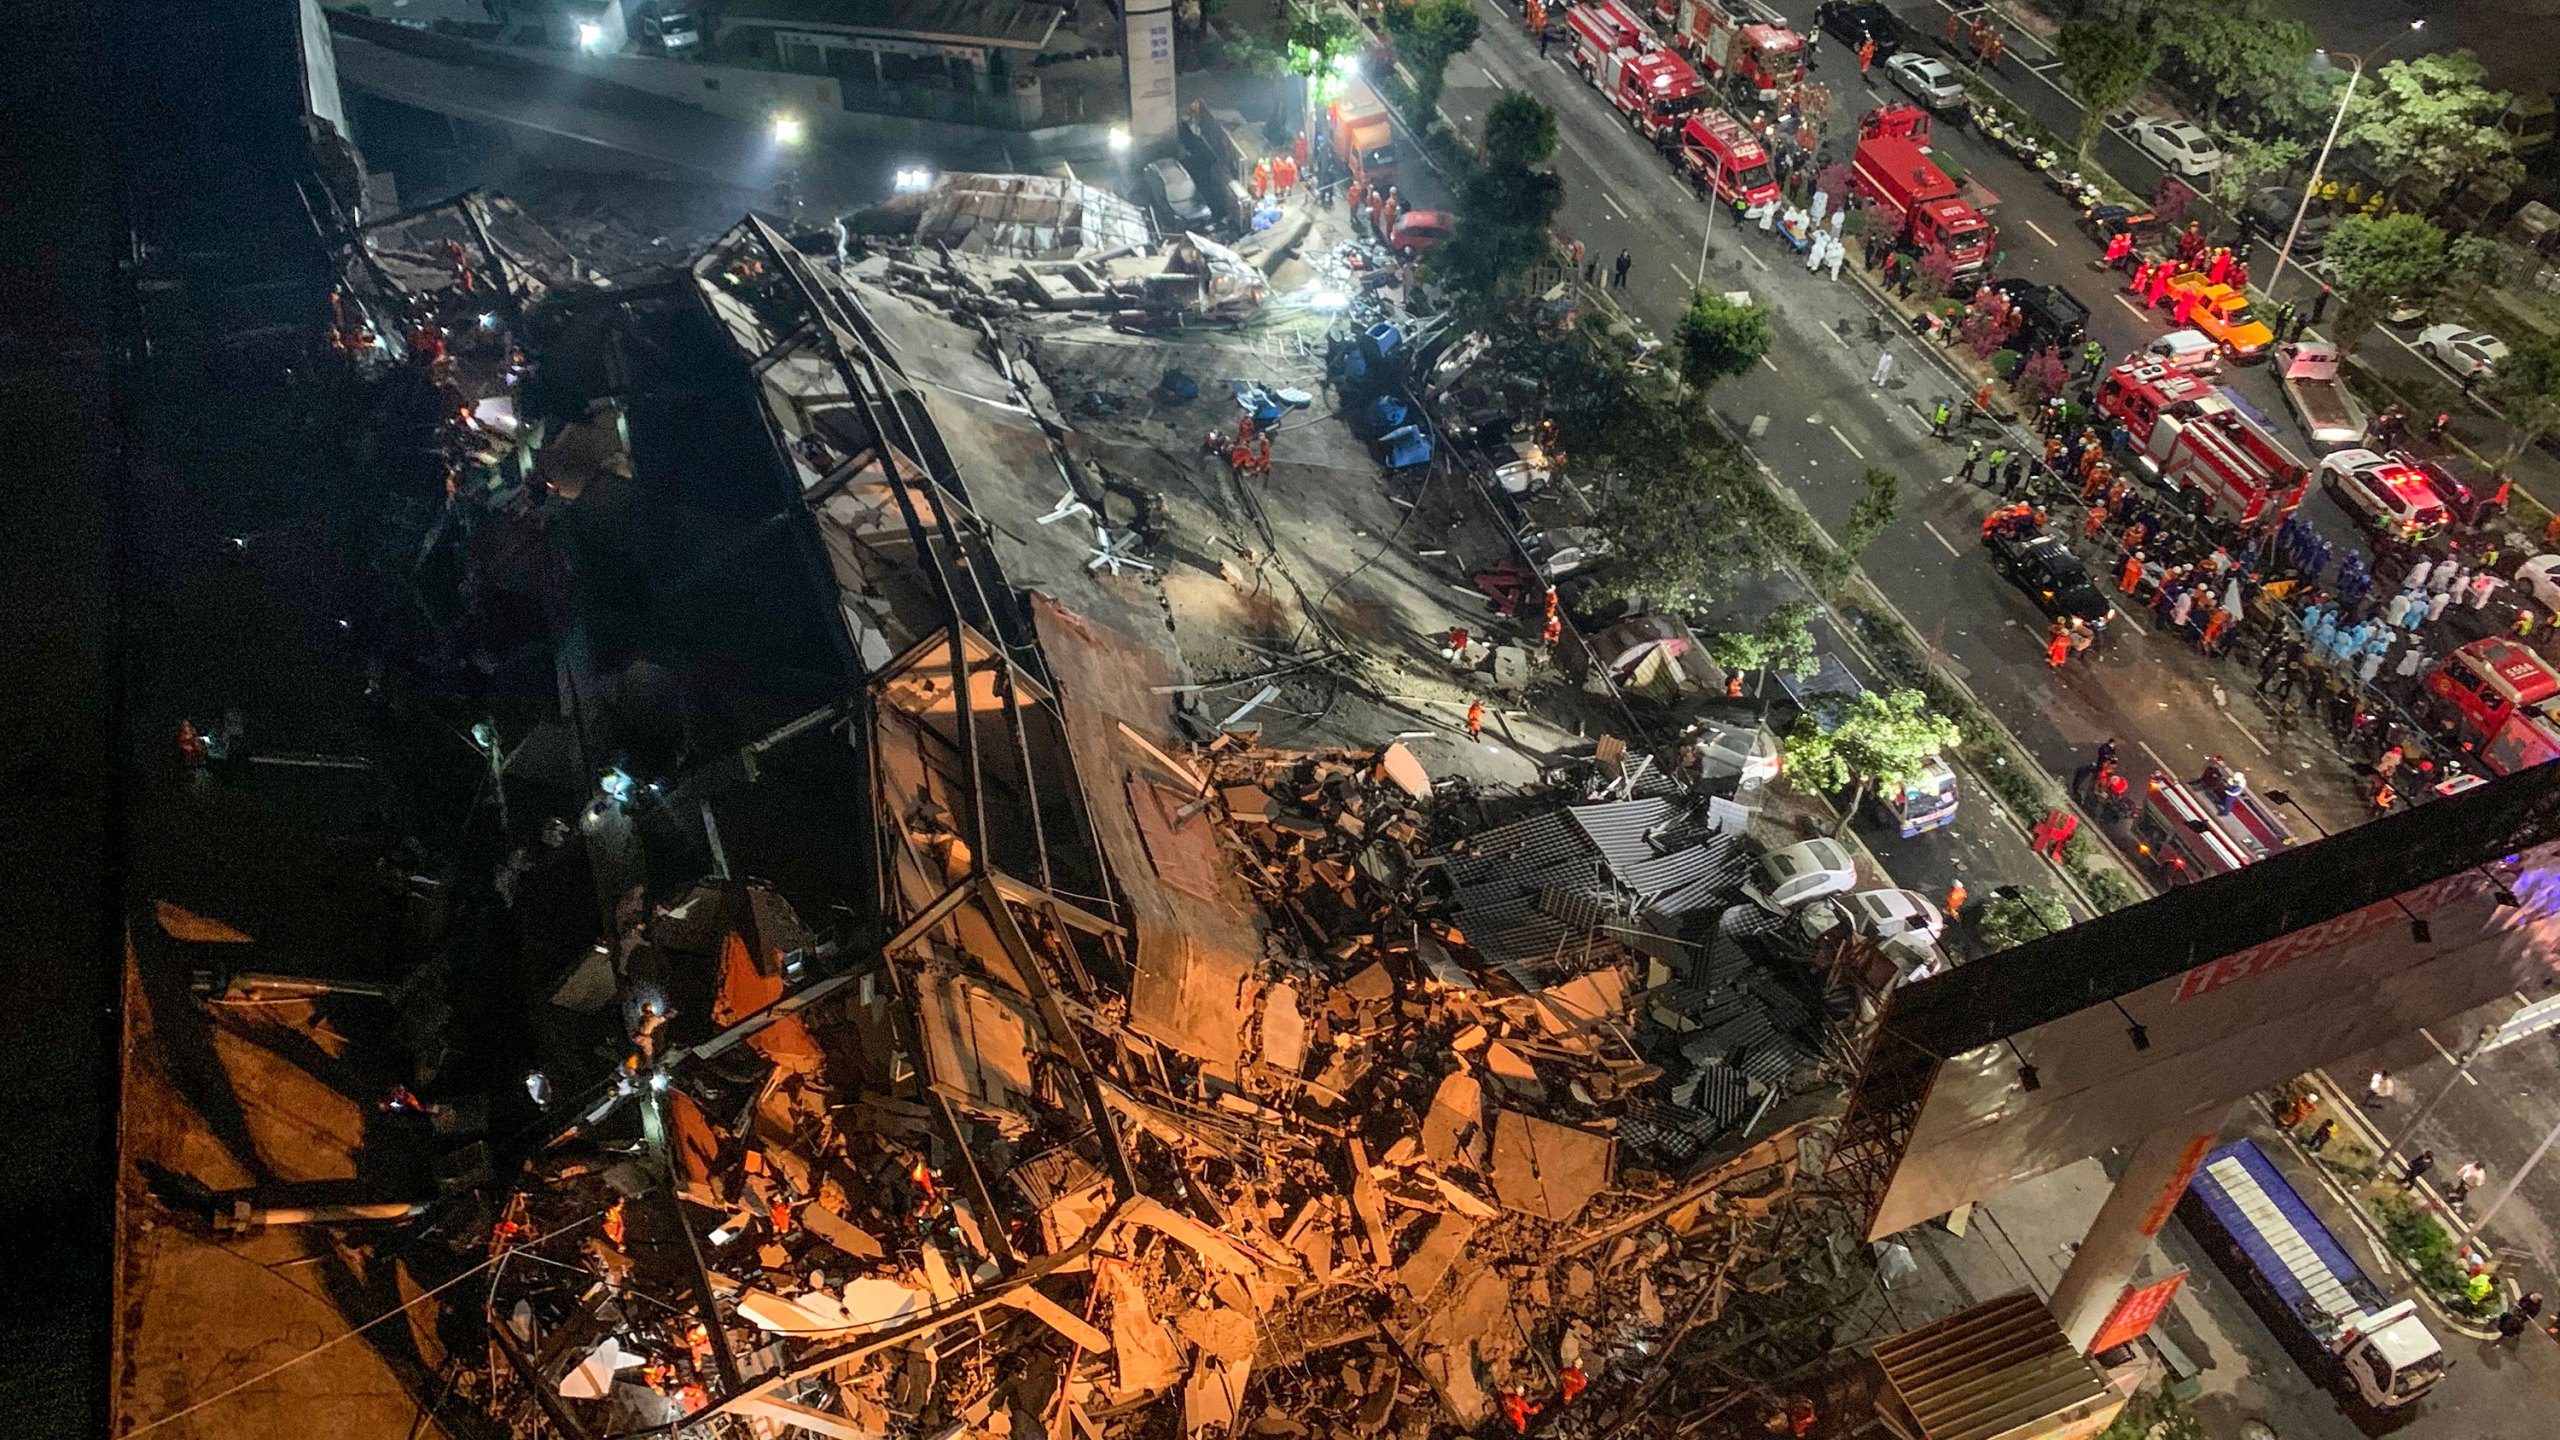 Rescuers search for survivors in the rubble of a collapsed hotel in Quanzhou, in China's eastern Fujian province on March 7, 2020. - Around 70 people were trapped after the Xinjia Hotel collapsed on March 7 evening, officials said.